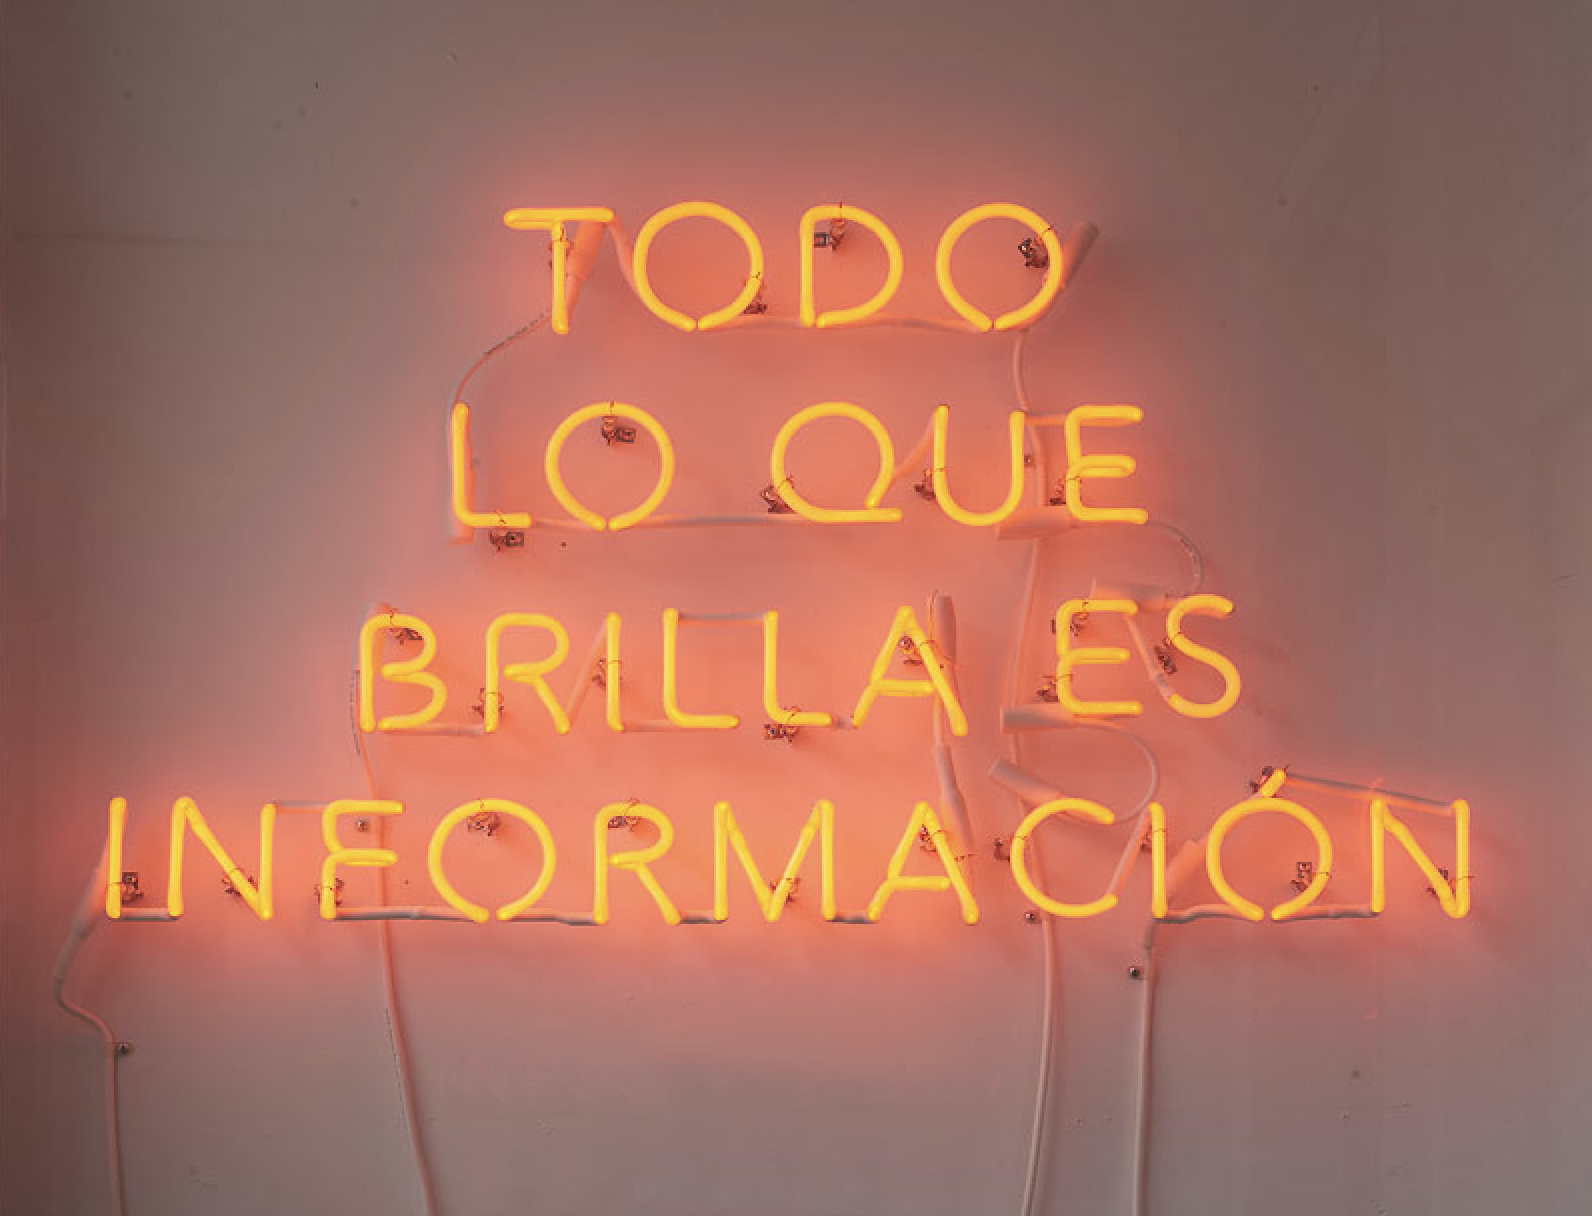 """Todo lo que brilla es información."" 2016, by Adriana Martínez, at the gallery pop-up Ruberta."